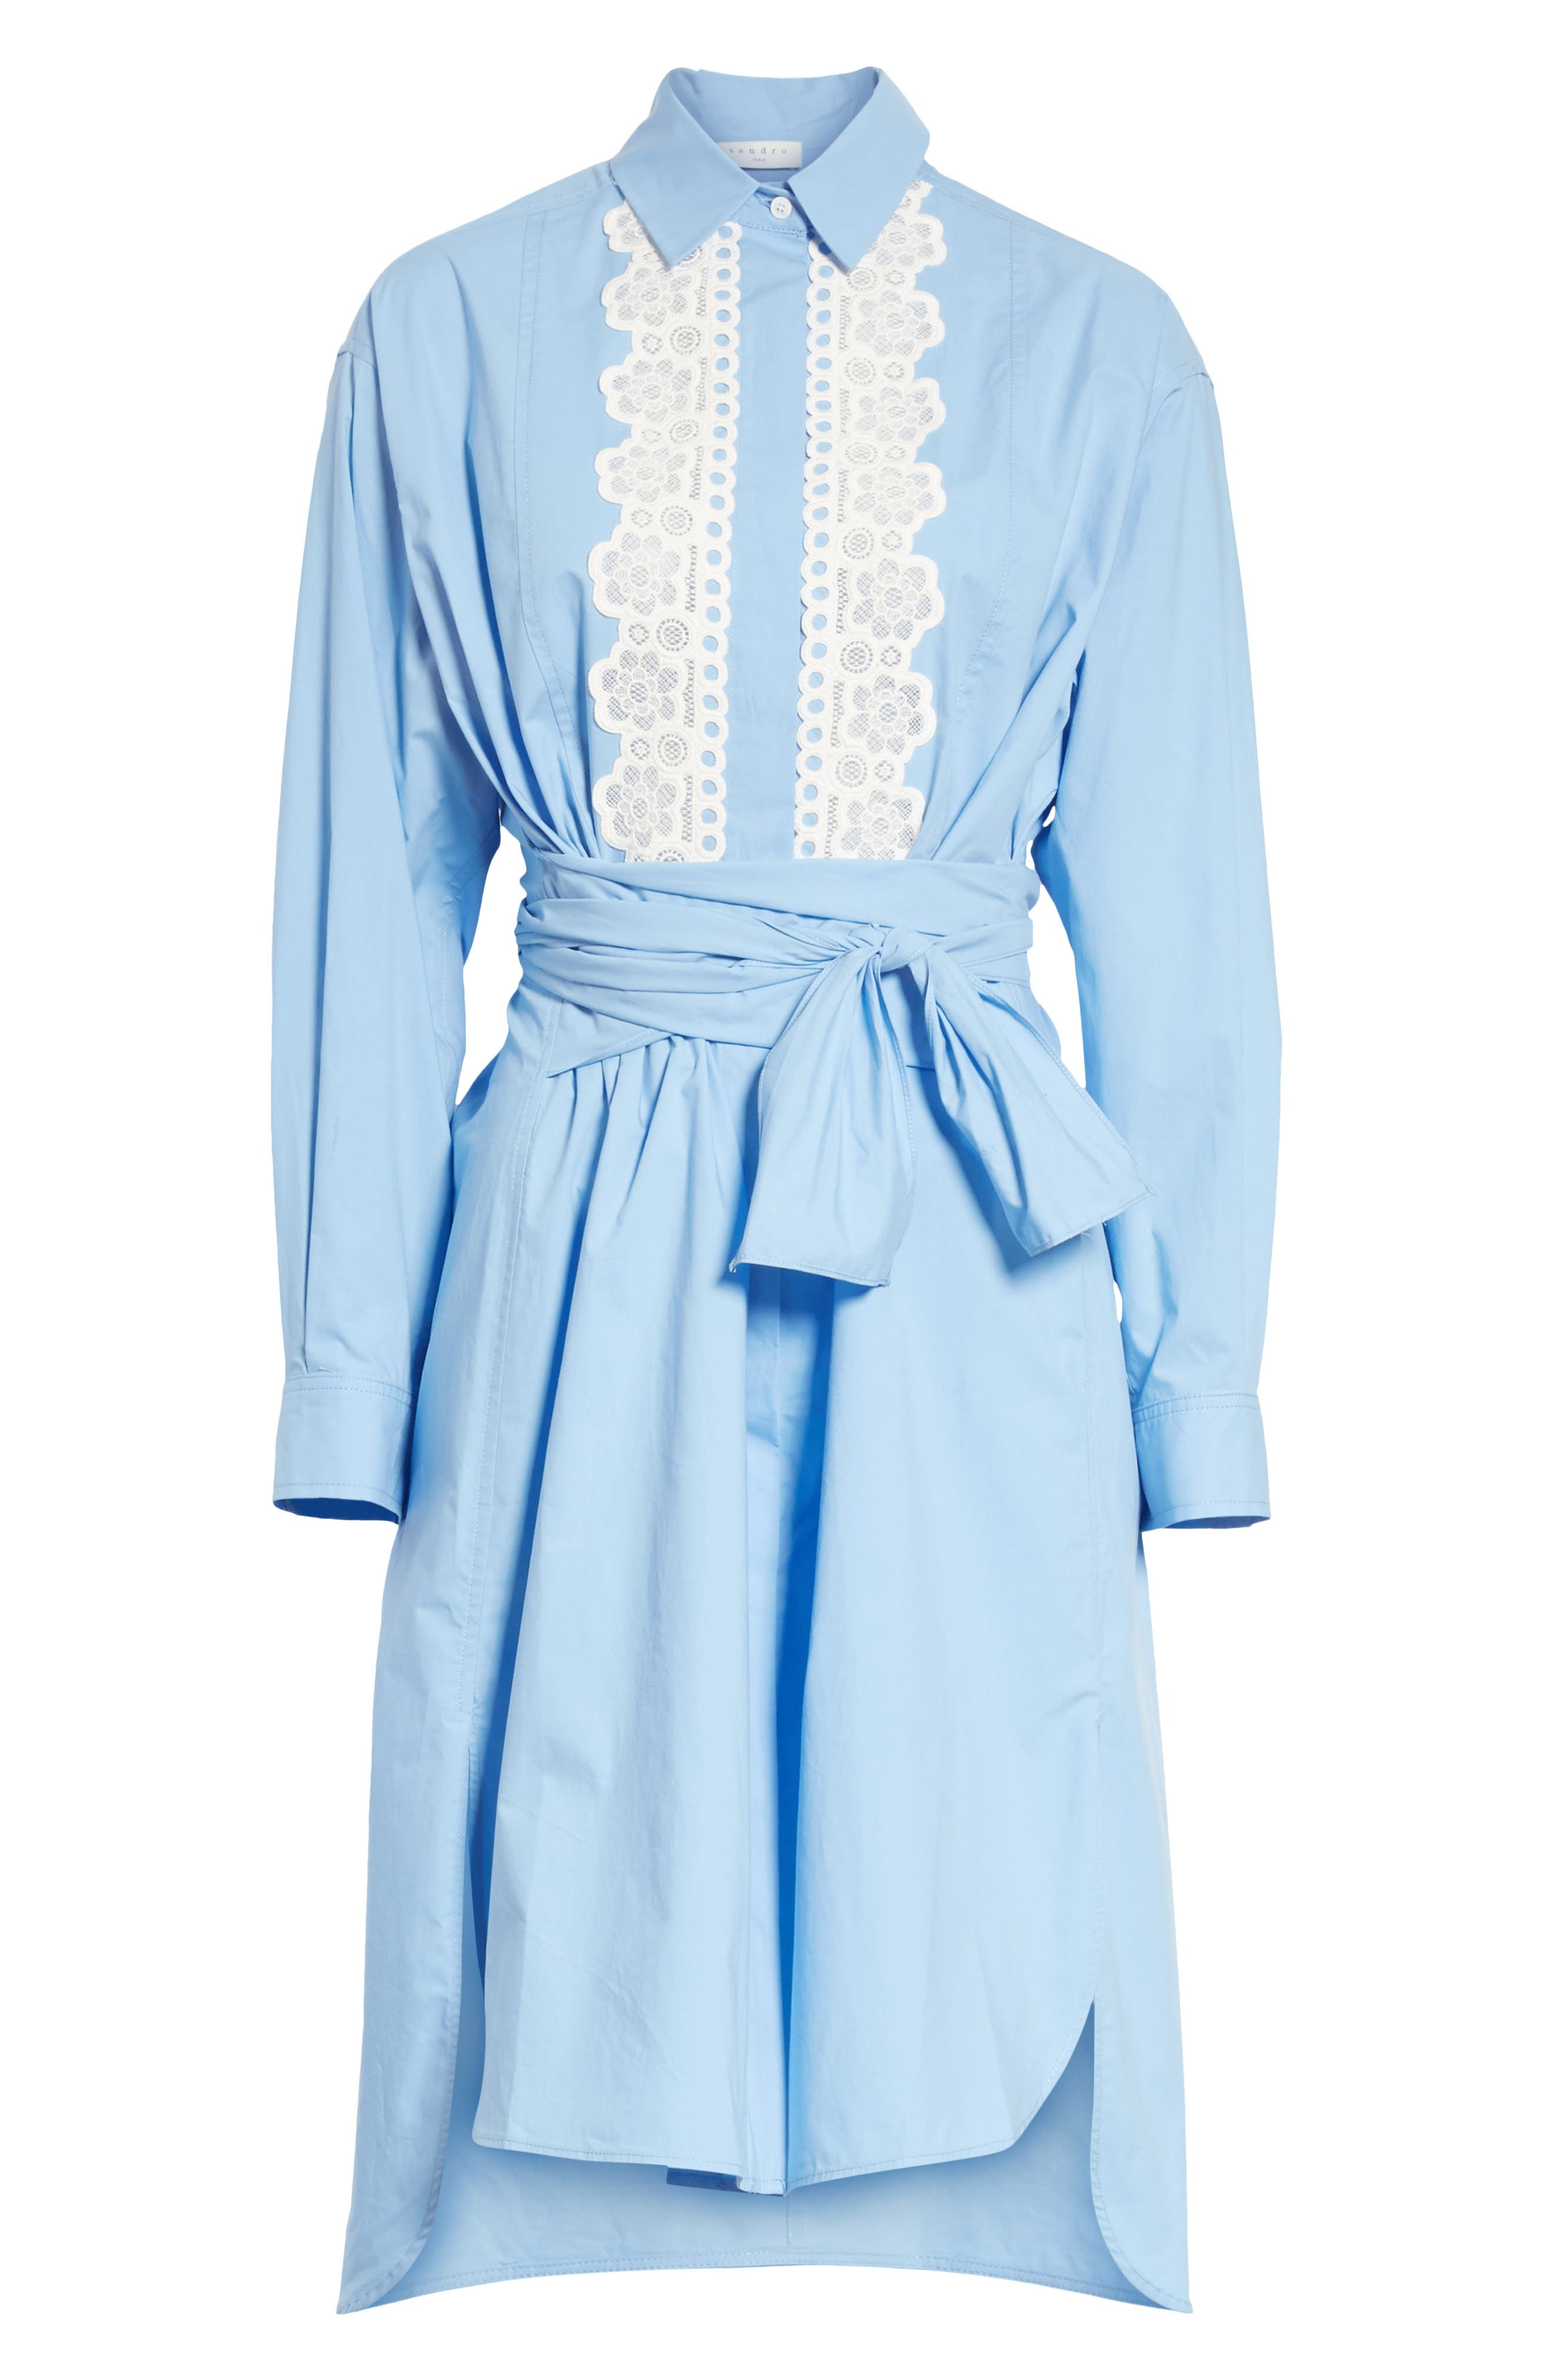 Bleu Ciel Cotton Shirtdress,                             Alternate thumbnail 6, color,